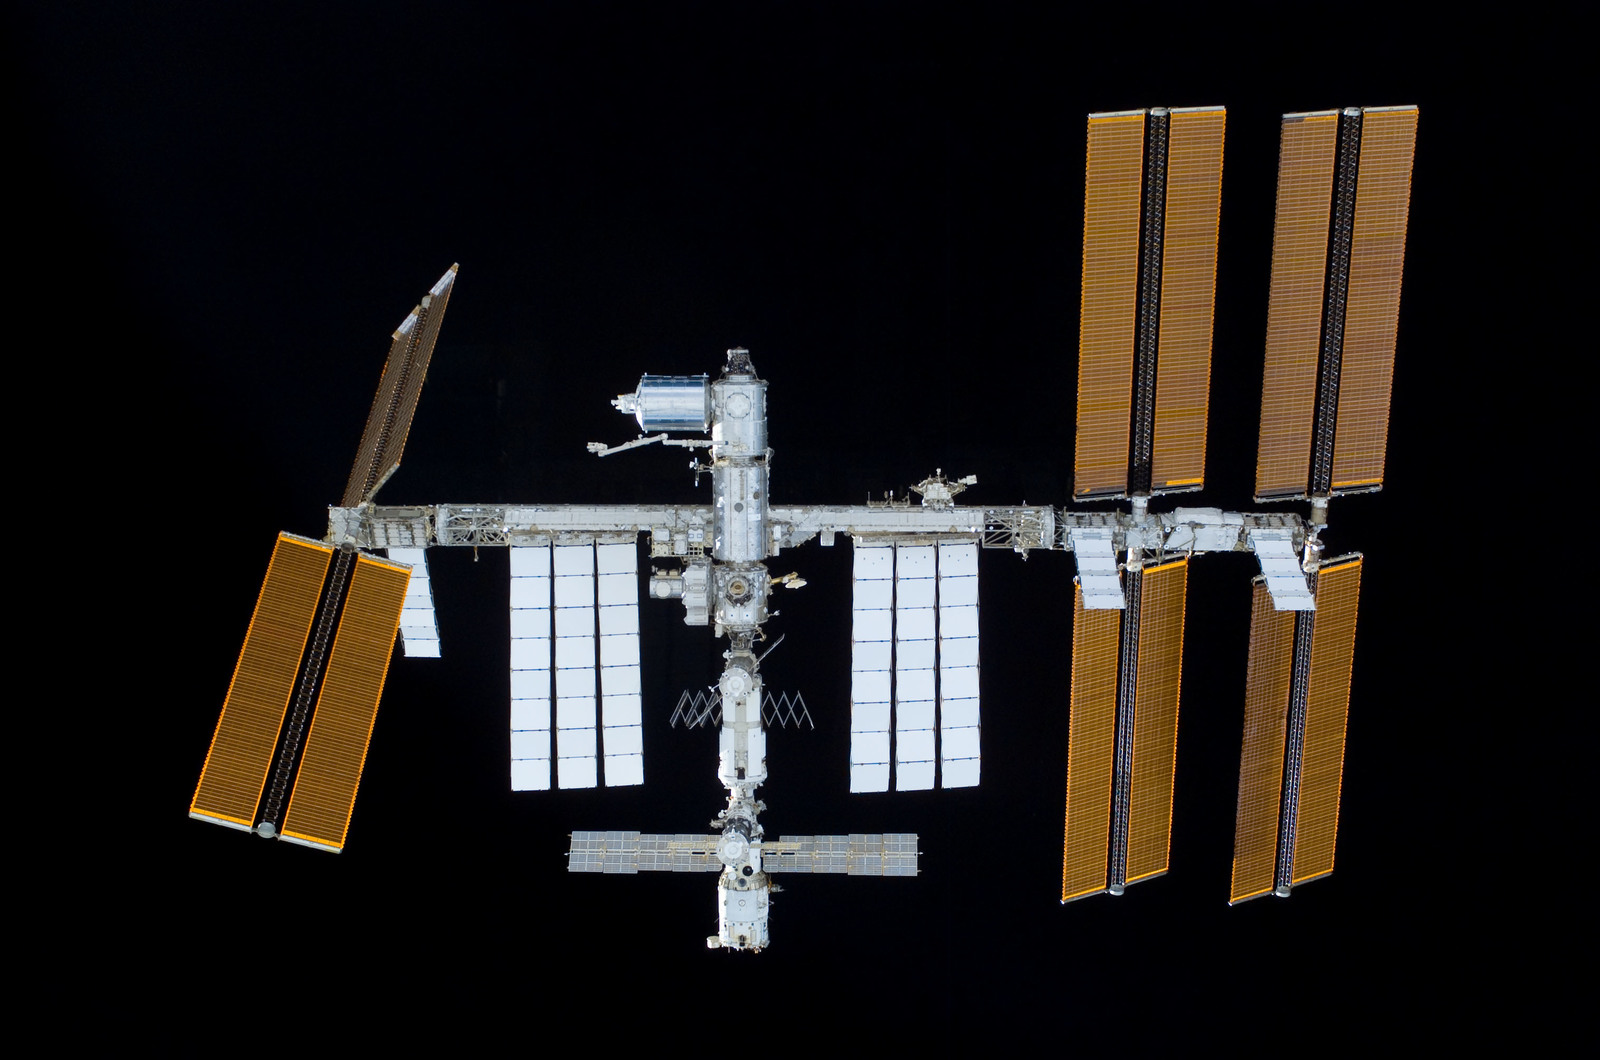 S122E011026 - STS-122 - View of ISS after STS-122 Undocking